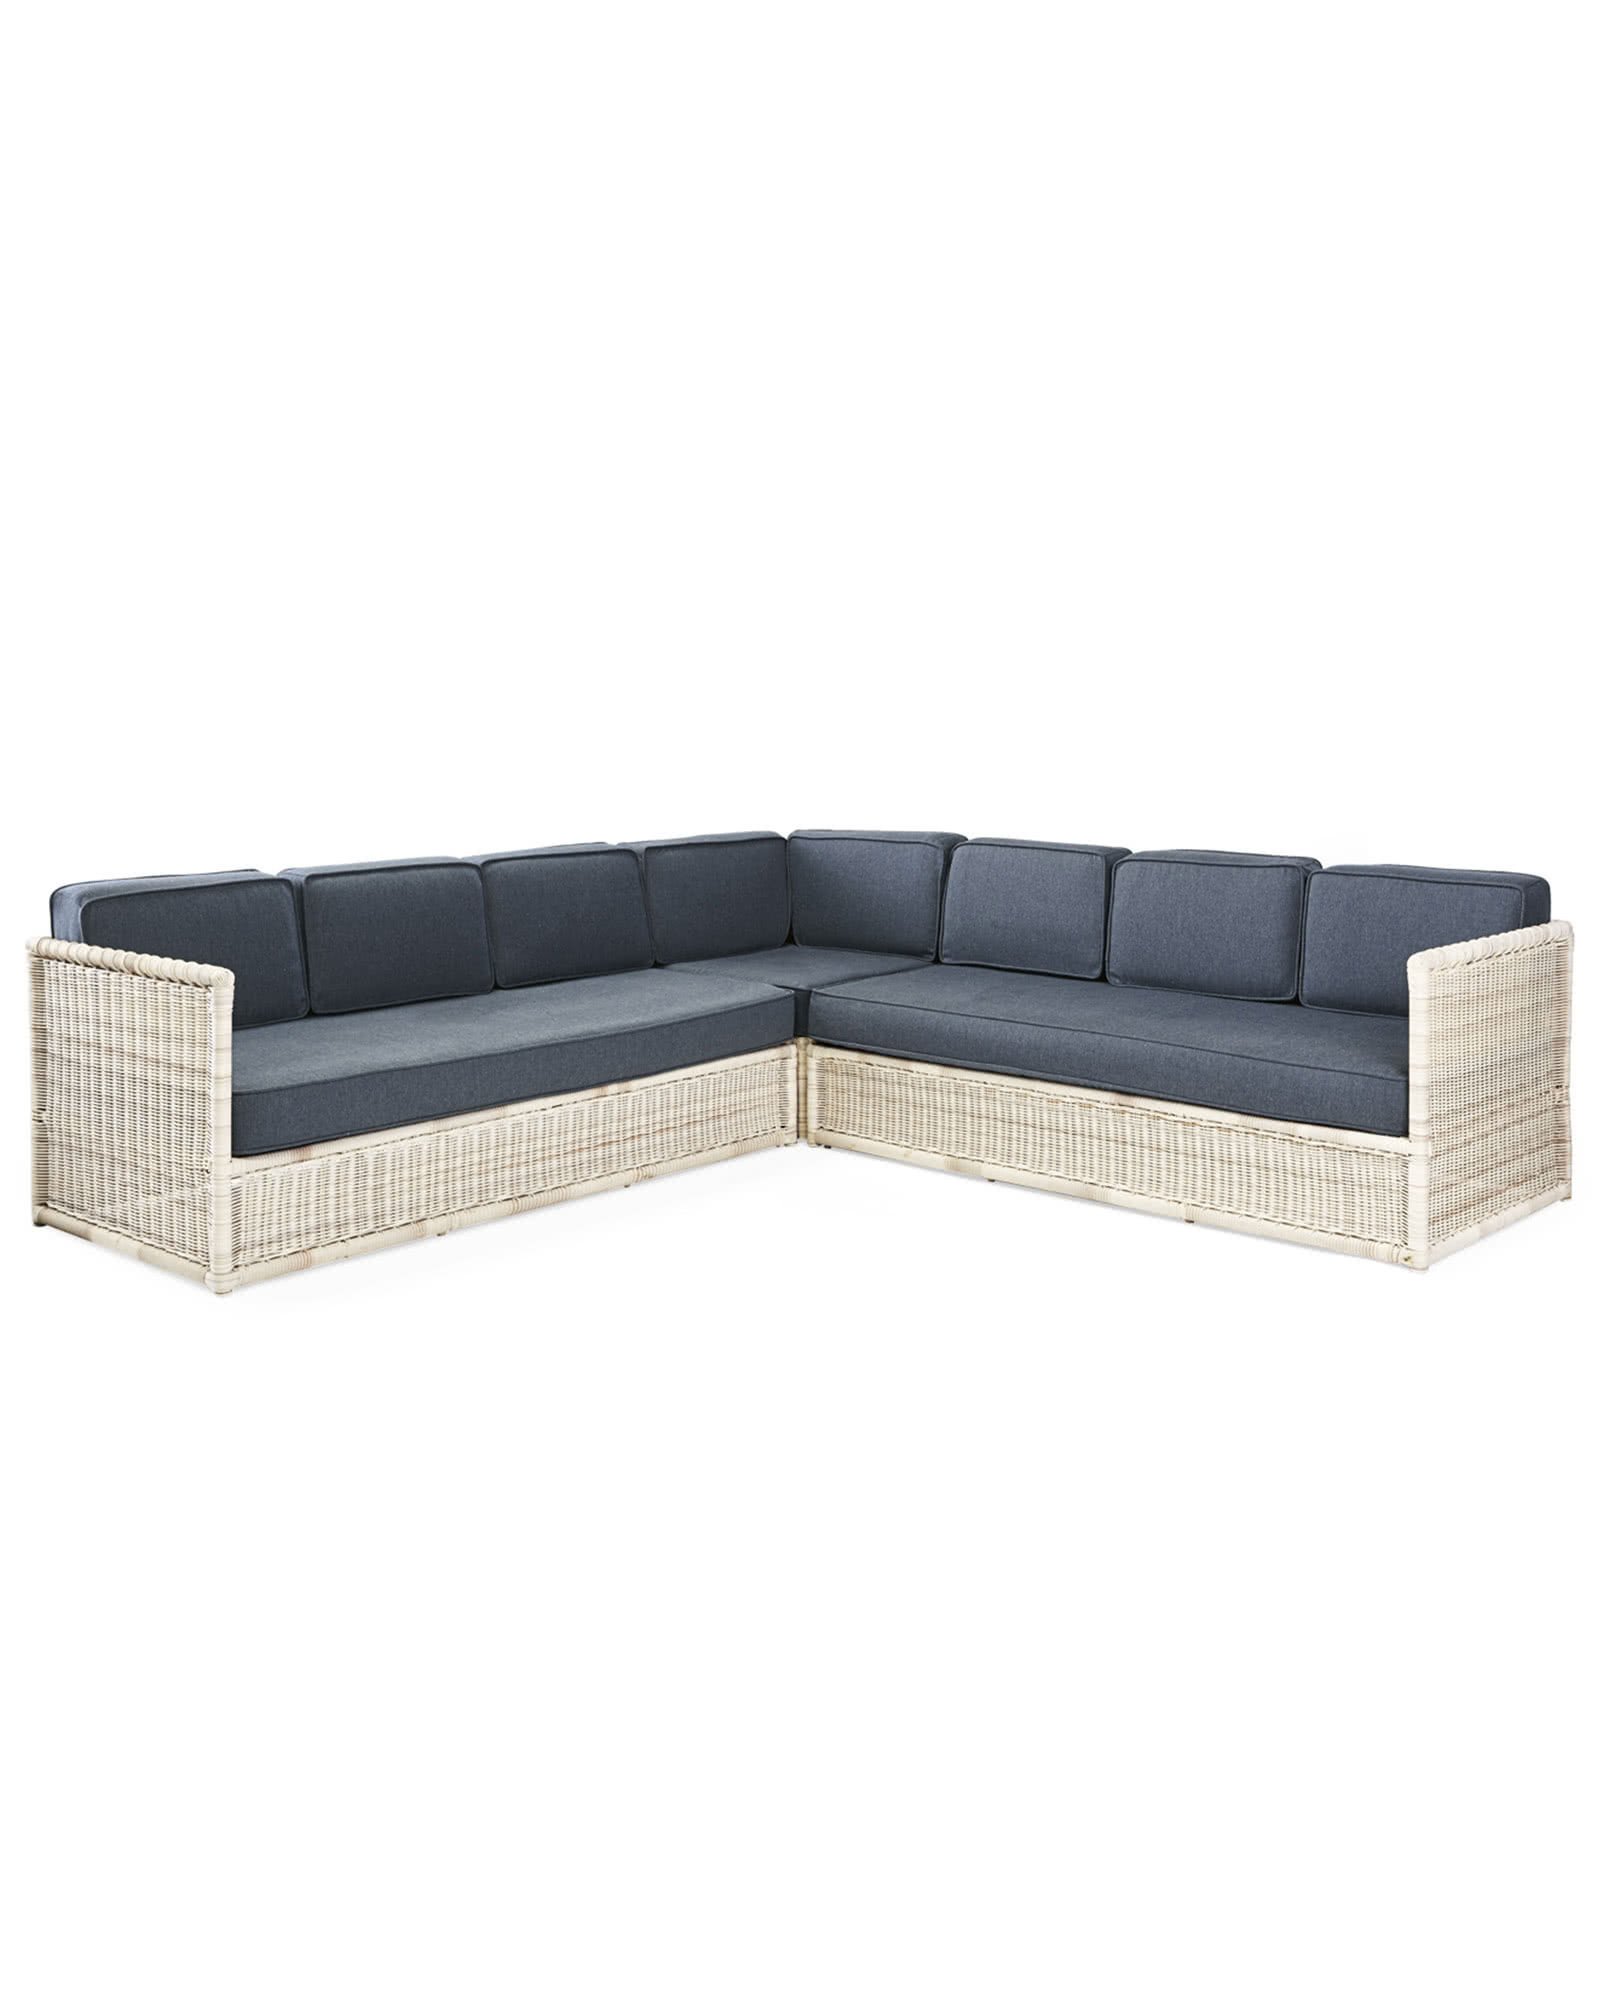 Pacifica Corner Sectional - Driftwood